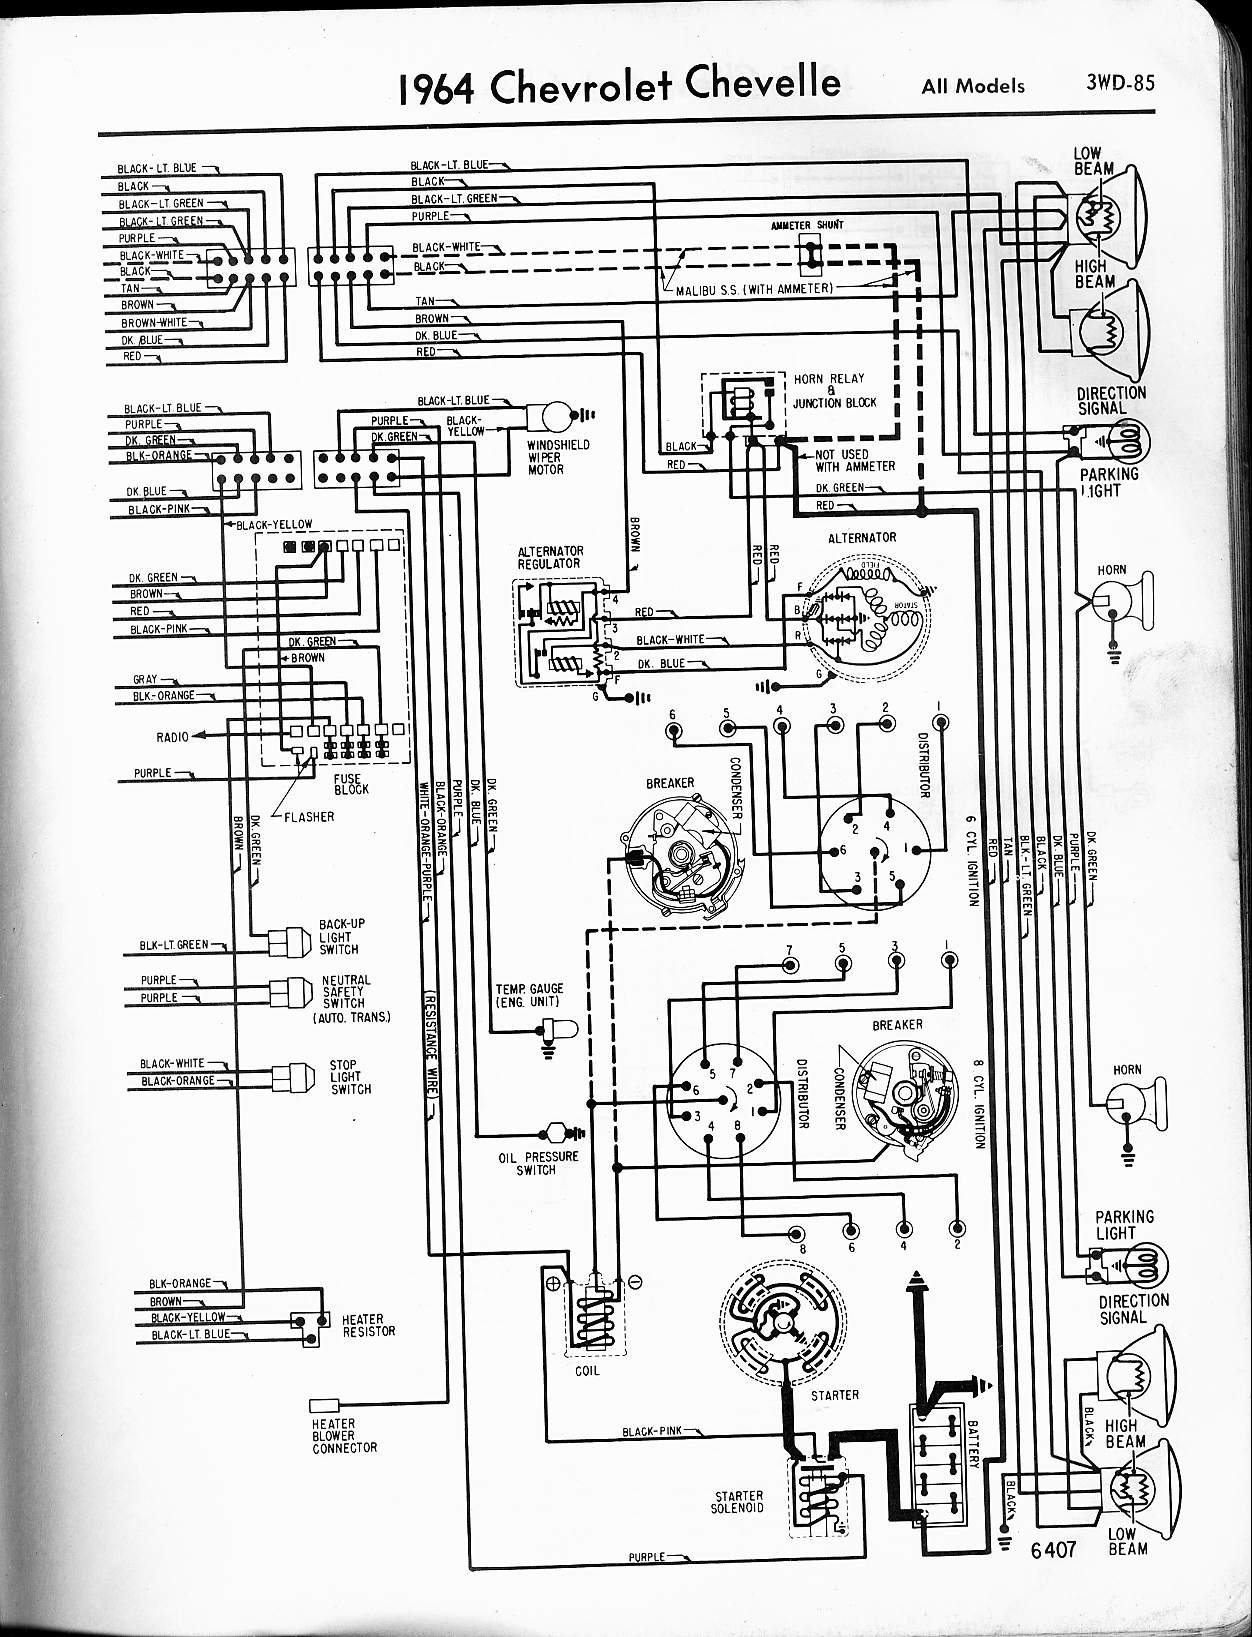 71 Chevelle Wiring Diagram Ignition System Free For 1985 Chevy Truck Heater Diagrams Rh Wizard Com 1971 Ac Schematics